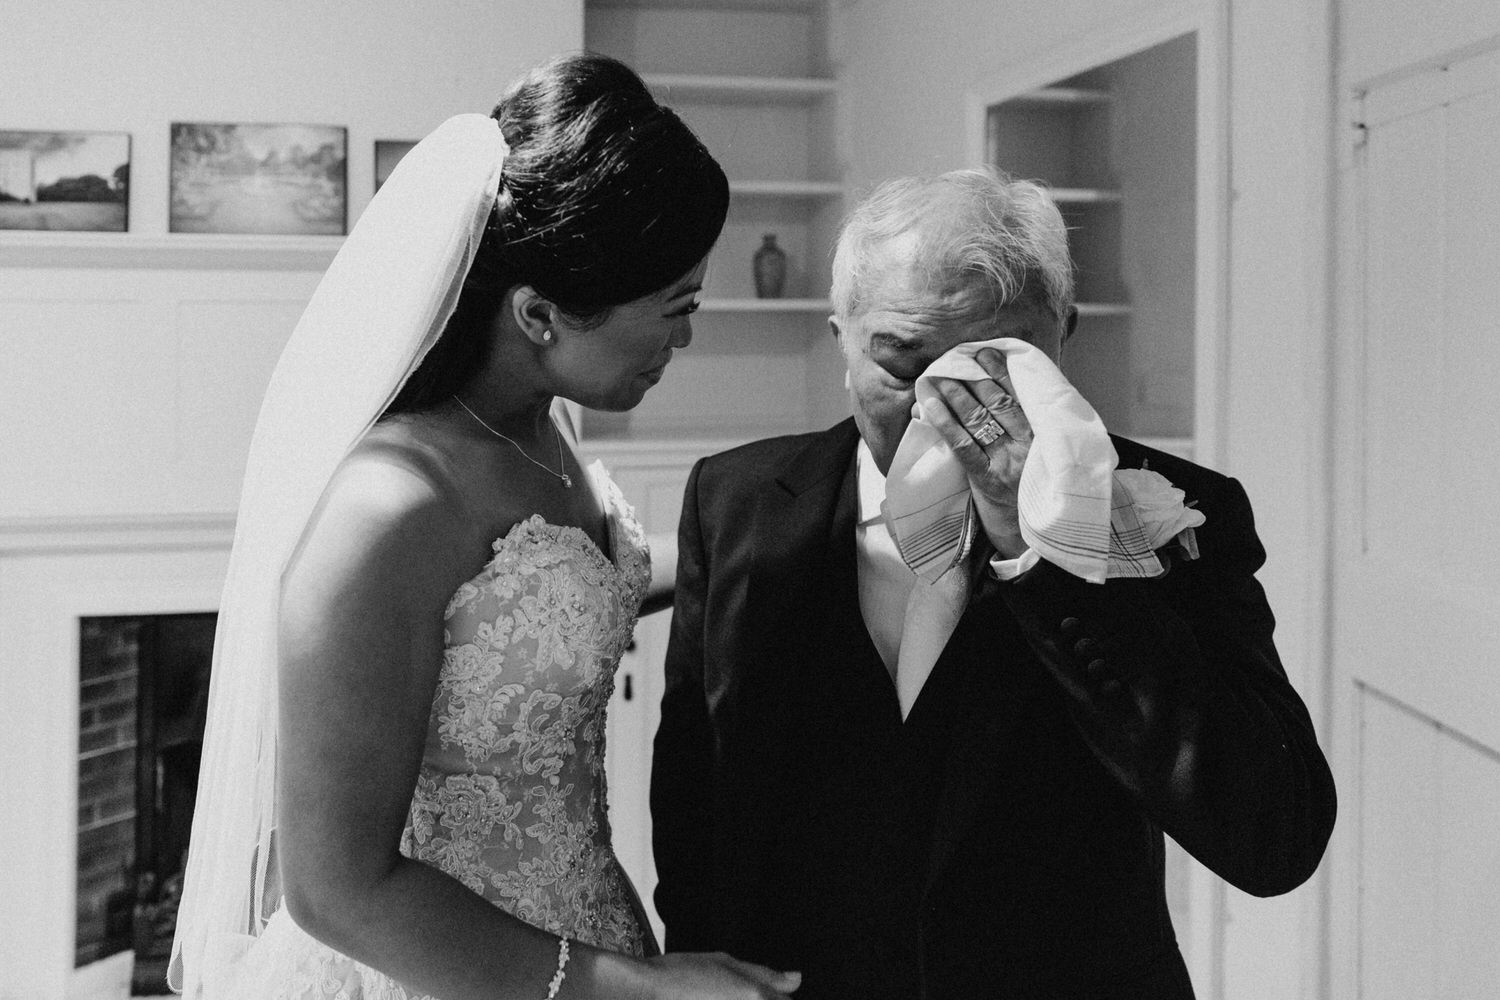 the brides dad is emotional after seeing his daughter in her wedding dress